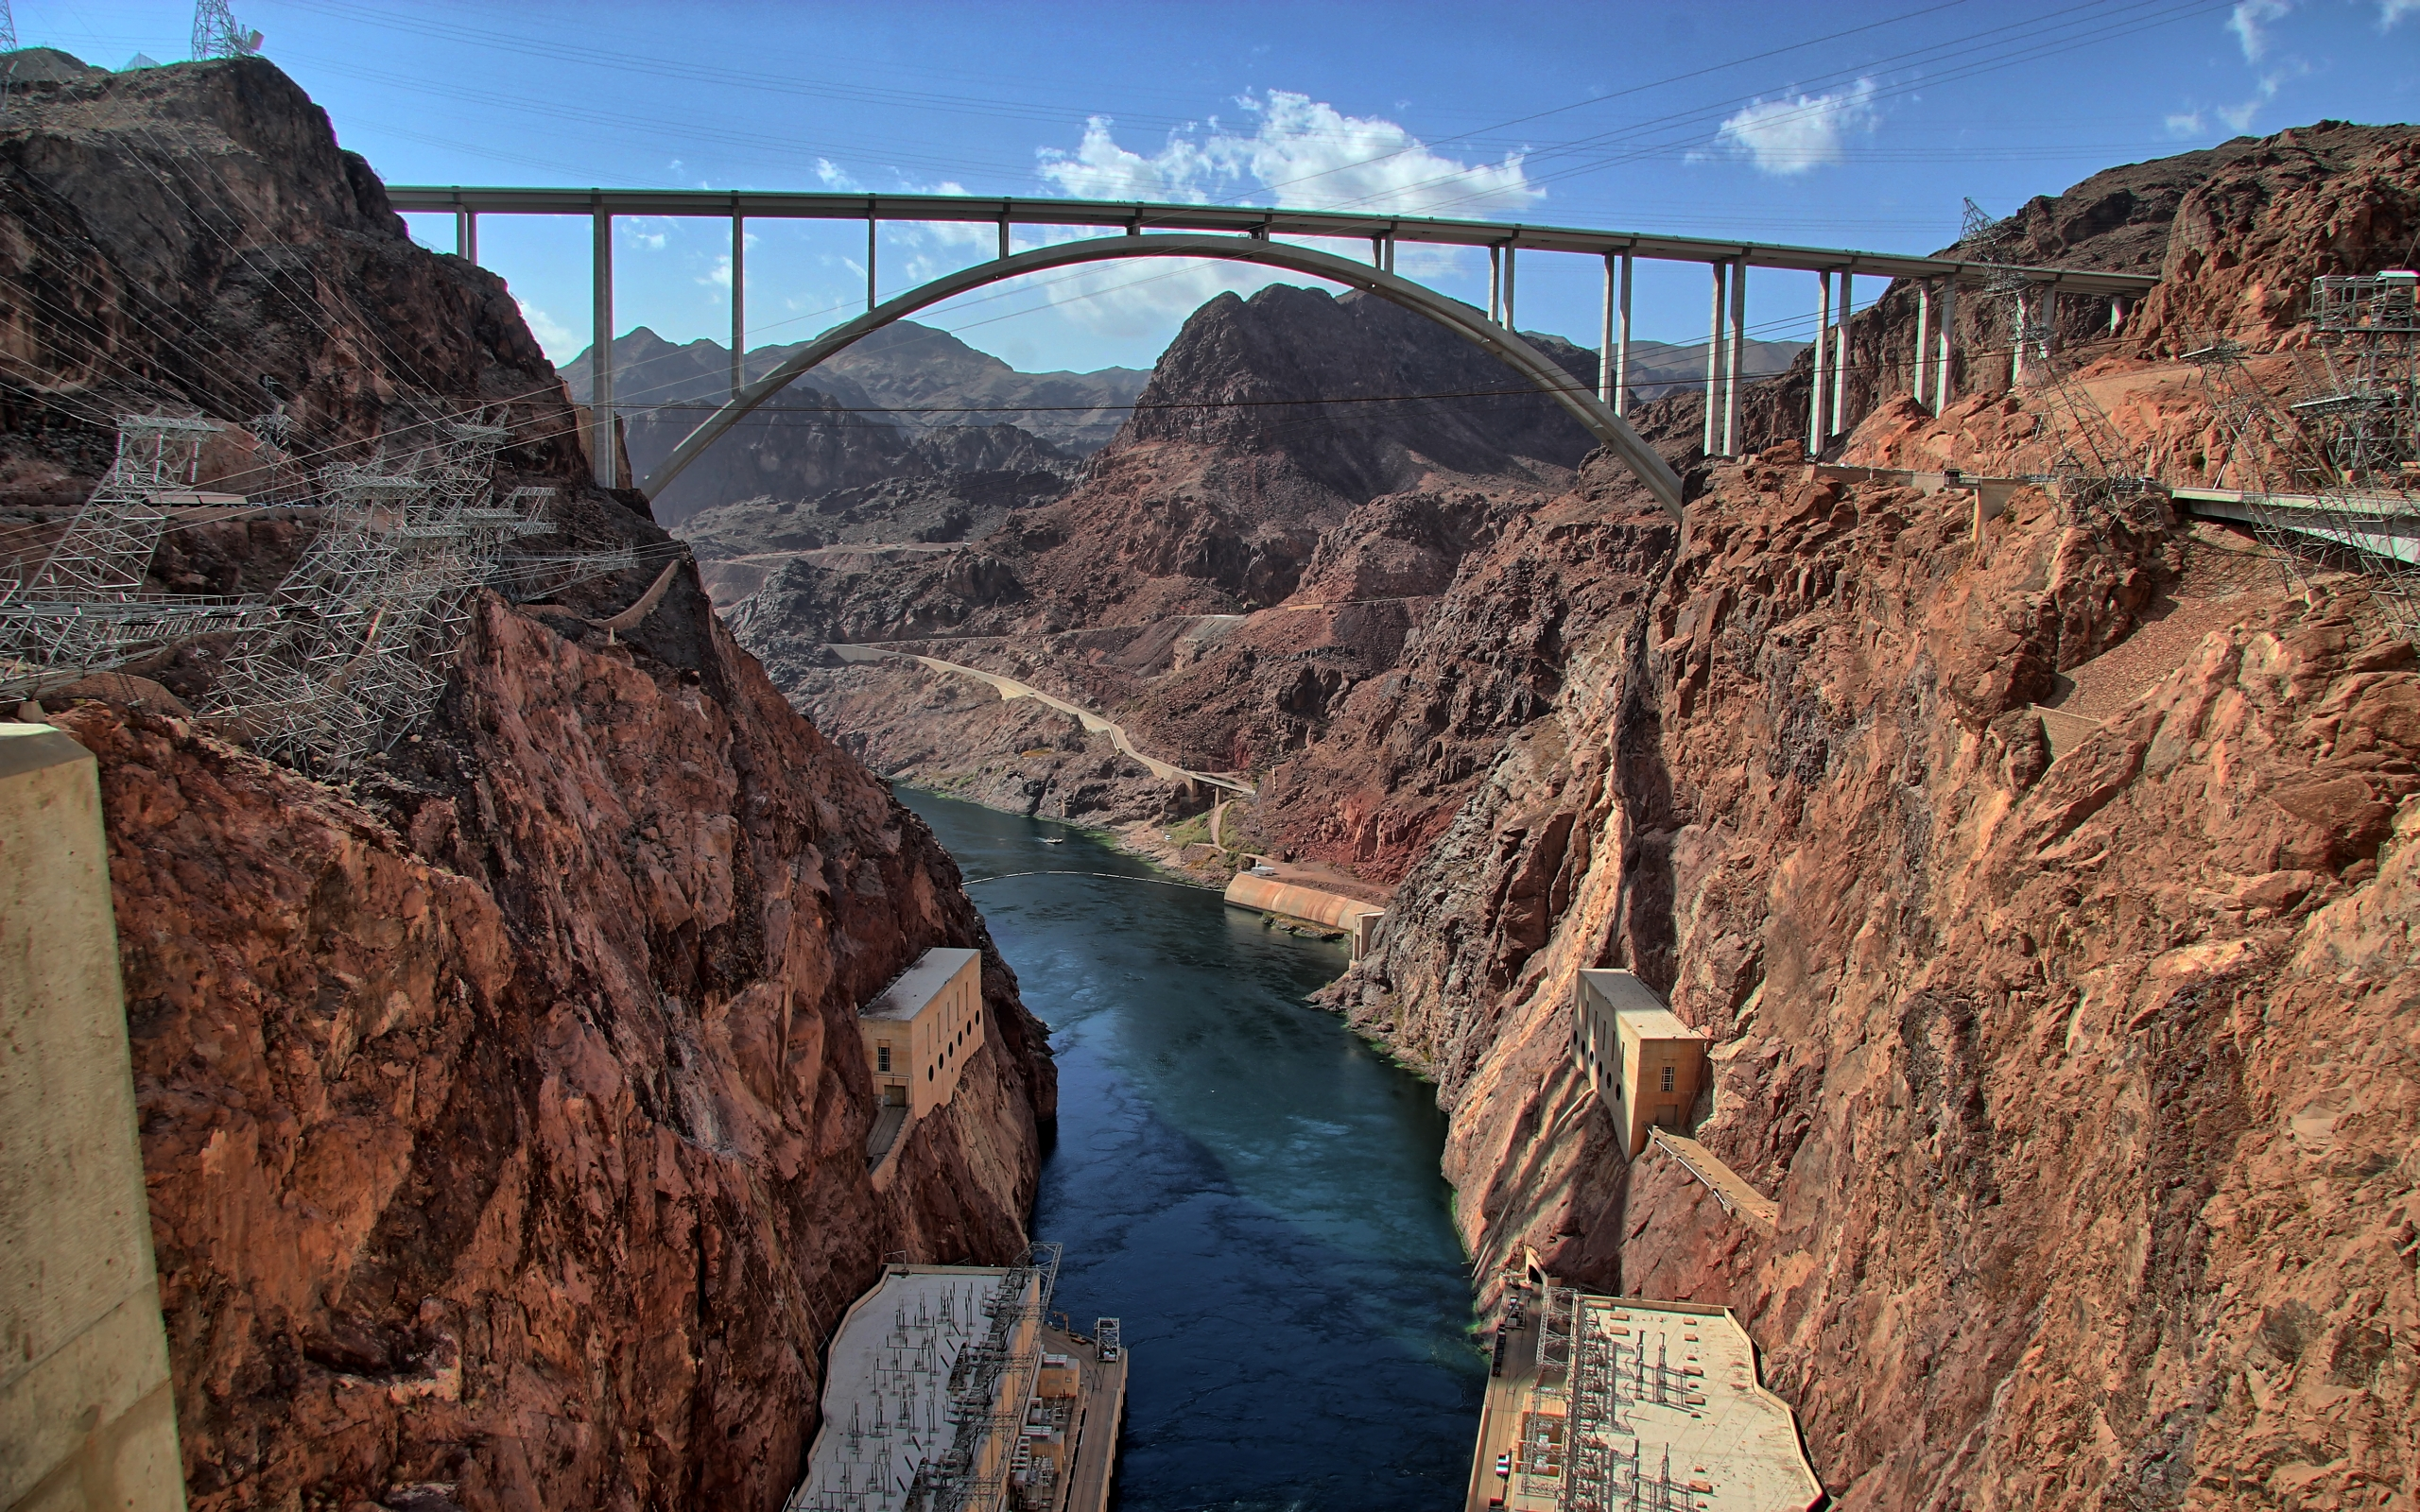 Hoover Dam HD Wallpaper Background Image 2560x1600 ID553447 2560x1600